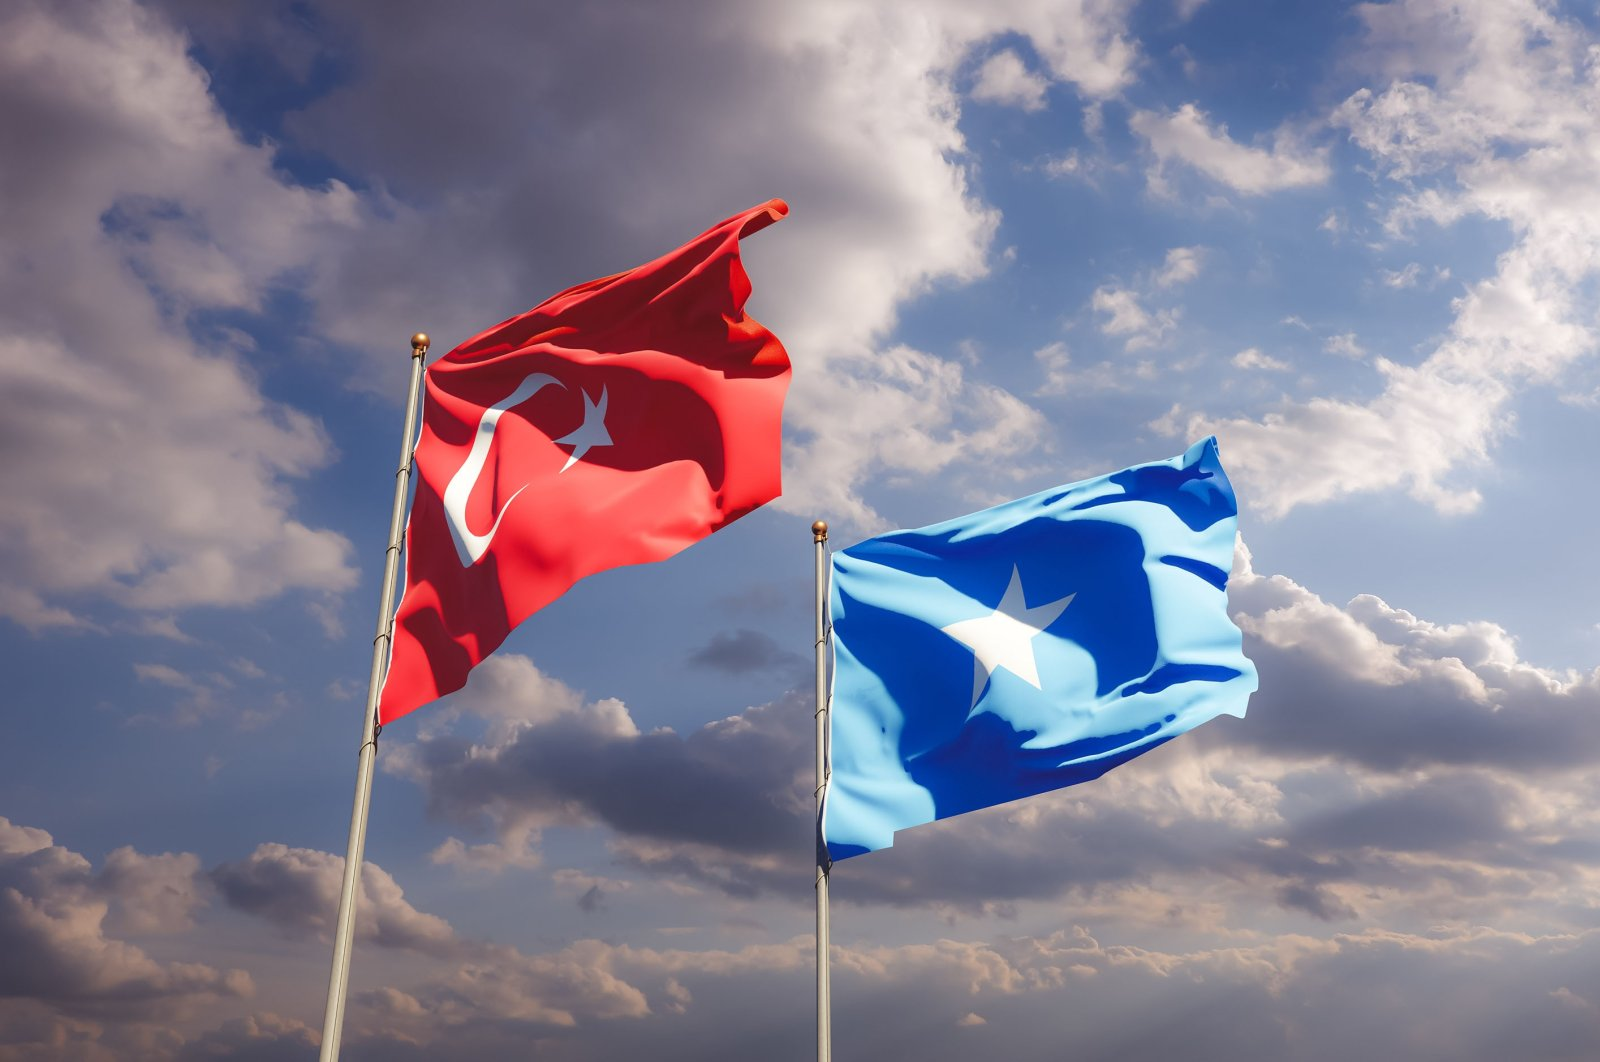 The flags of Turkey and Somalia. (Shutterstock Photo)